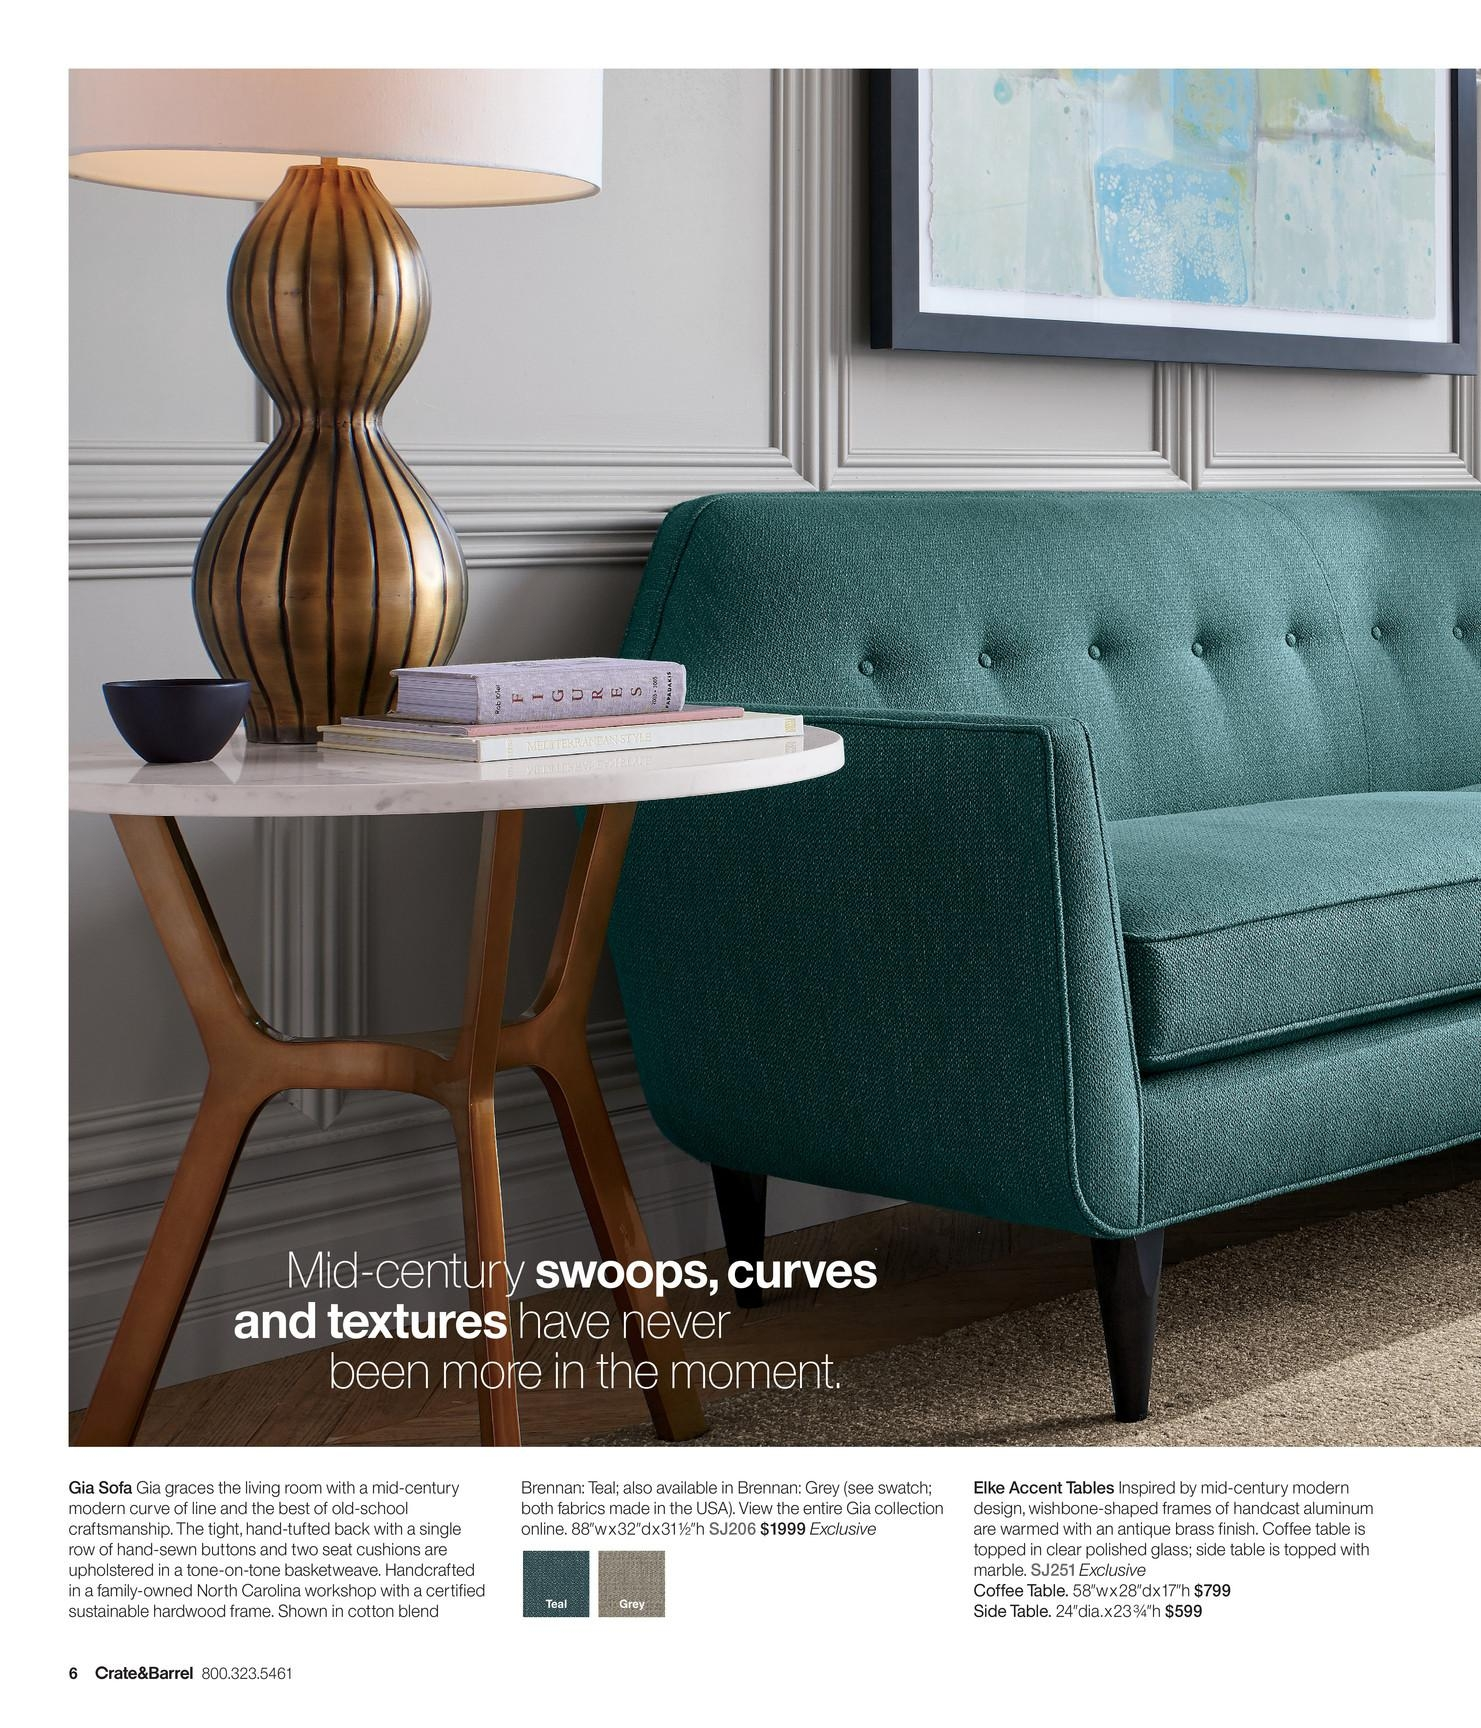 Crate And Barrel Sofa Table | Sofa Gallery | Kengire With Crate And Barrel Sofa Tables (Image 8 of 20)